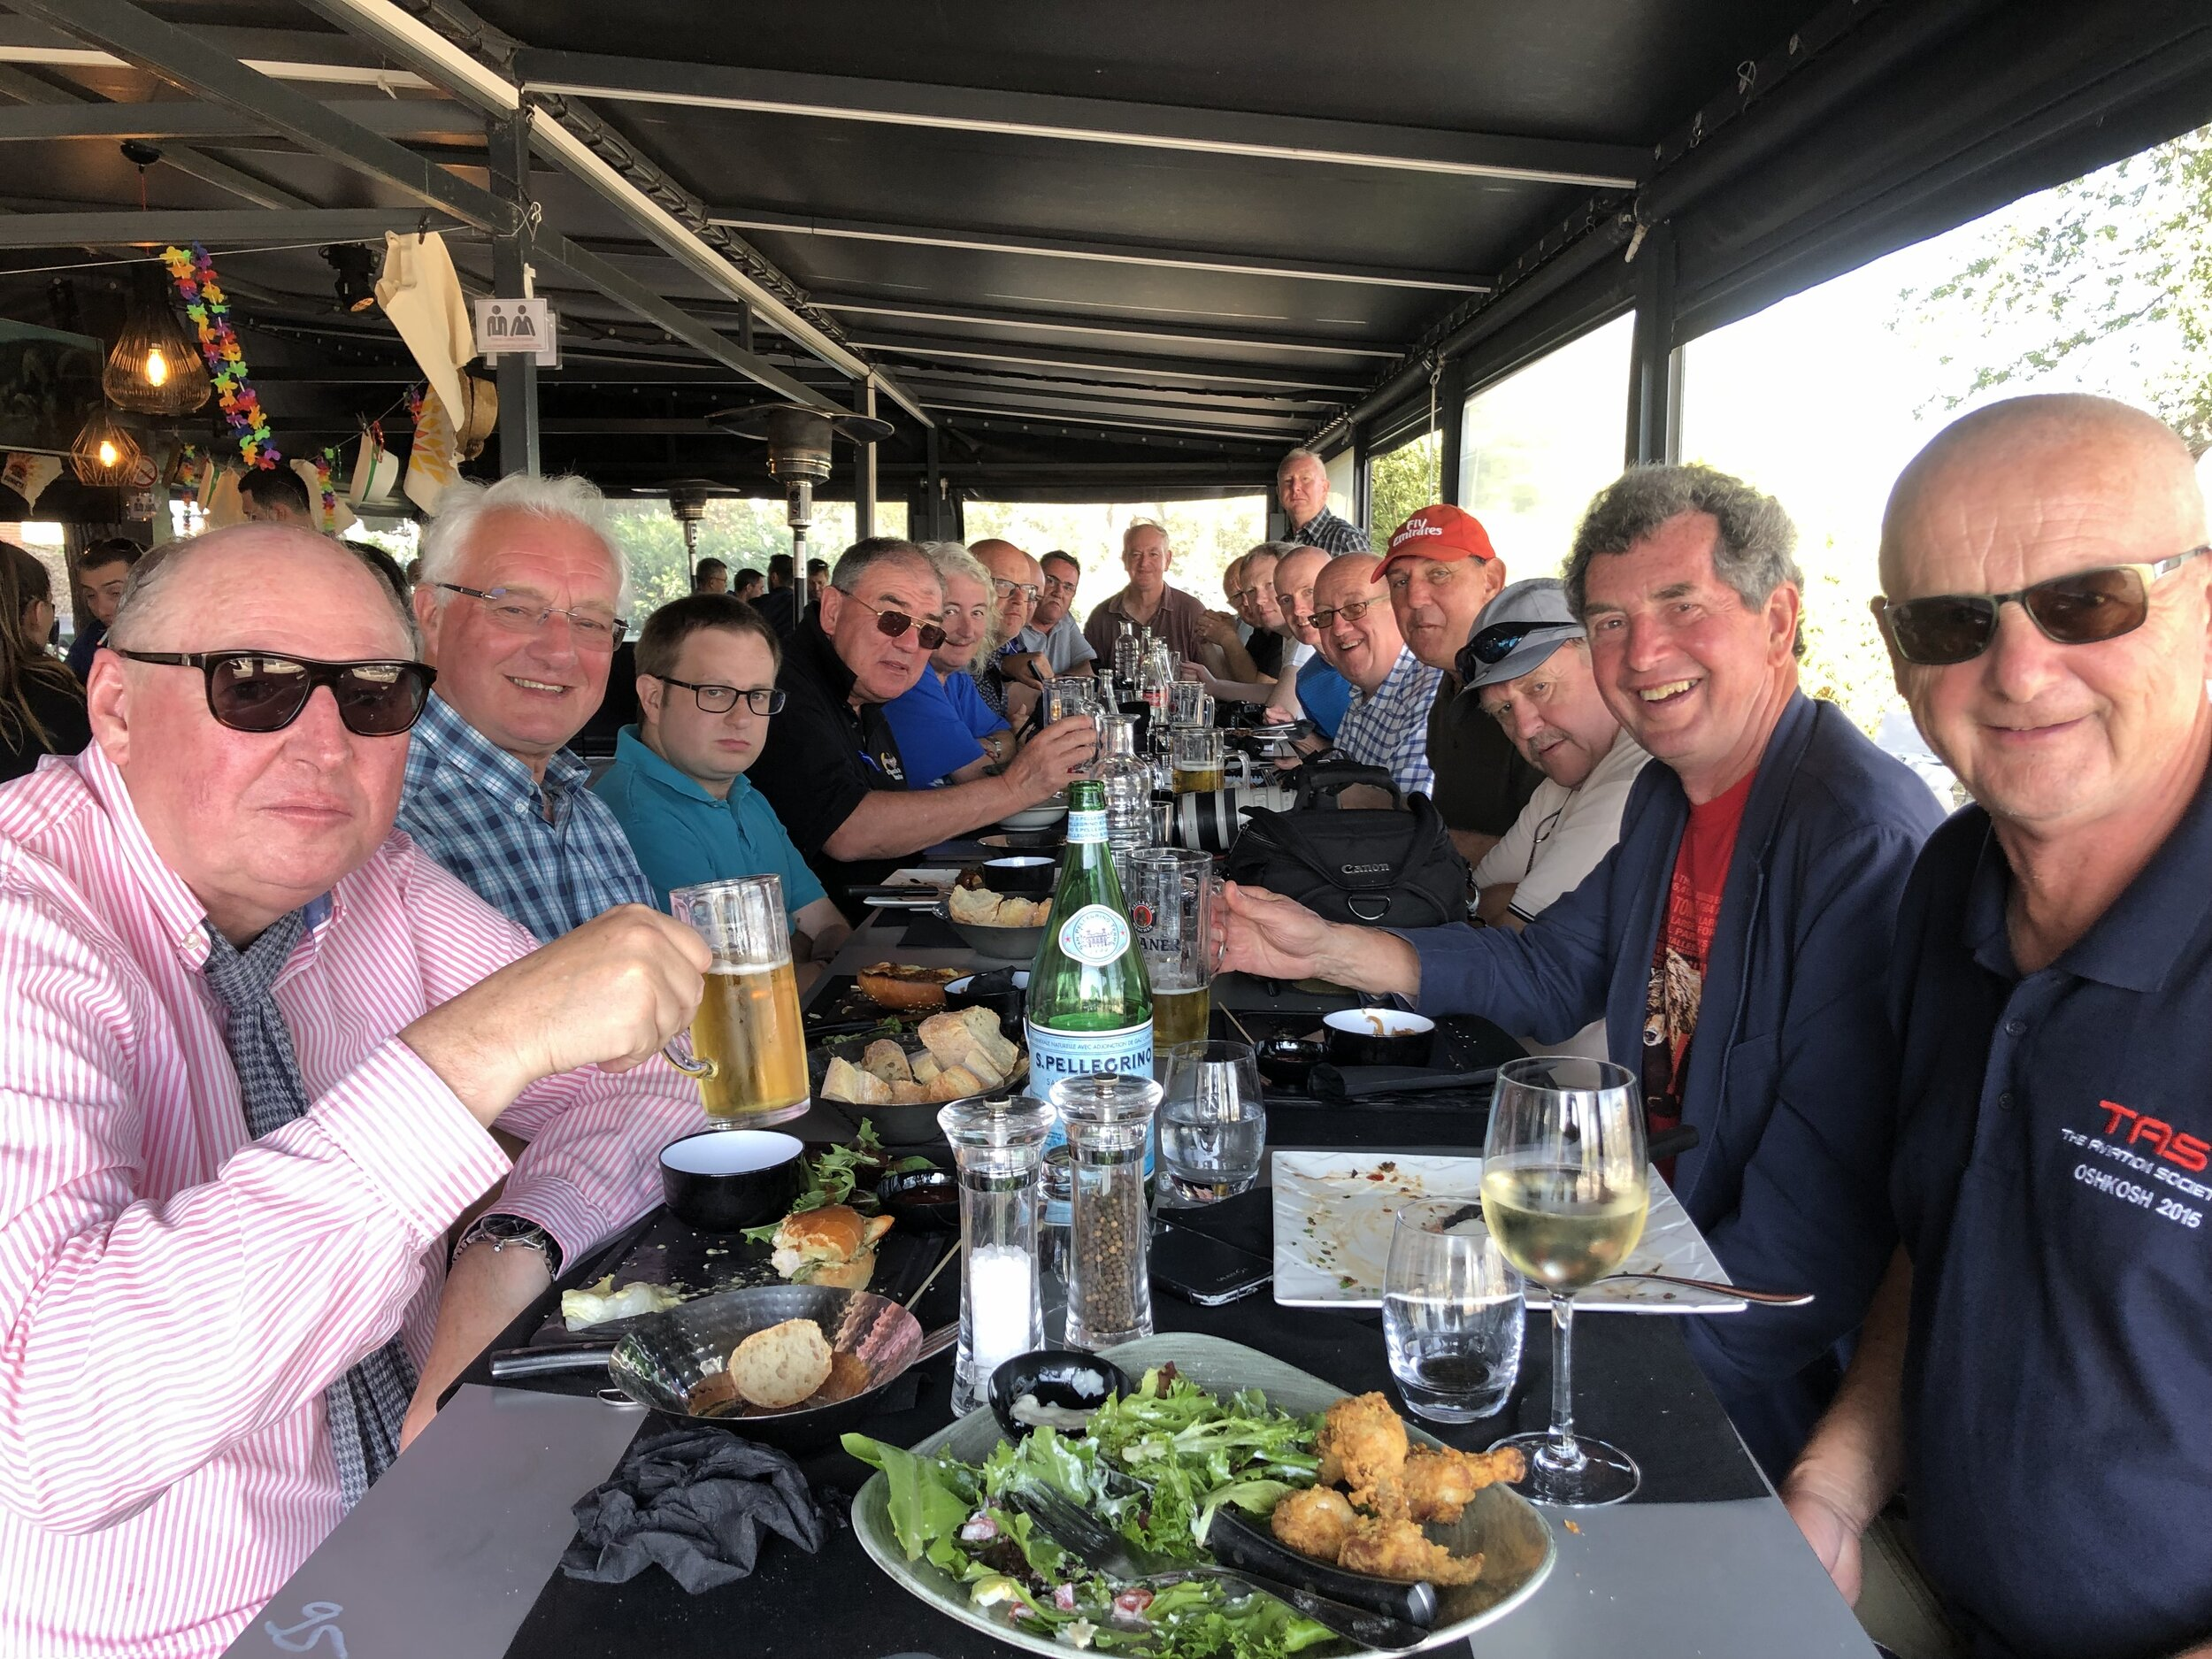 Let's do lunch - The traditional TAS group meal and a petite aperitif prior to our departure back to Manchester. 20th September 2019. Photo: Debbie Riley.